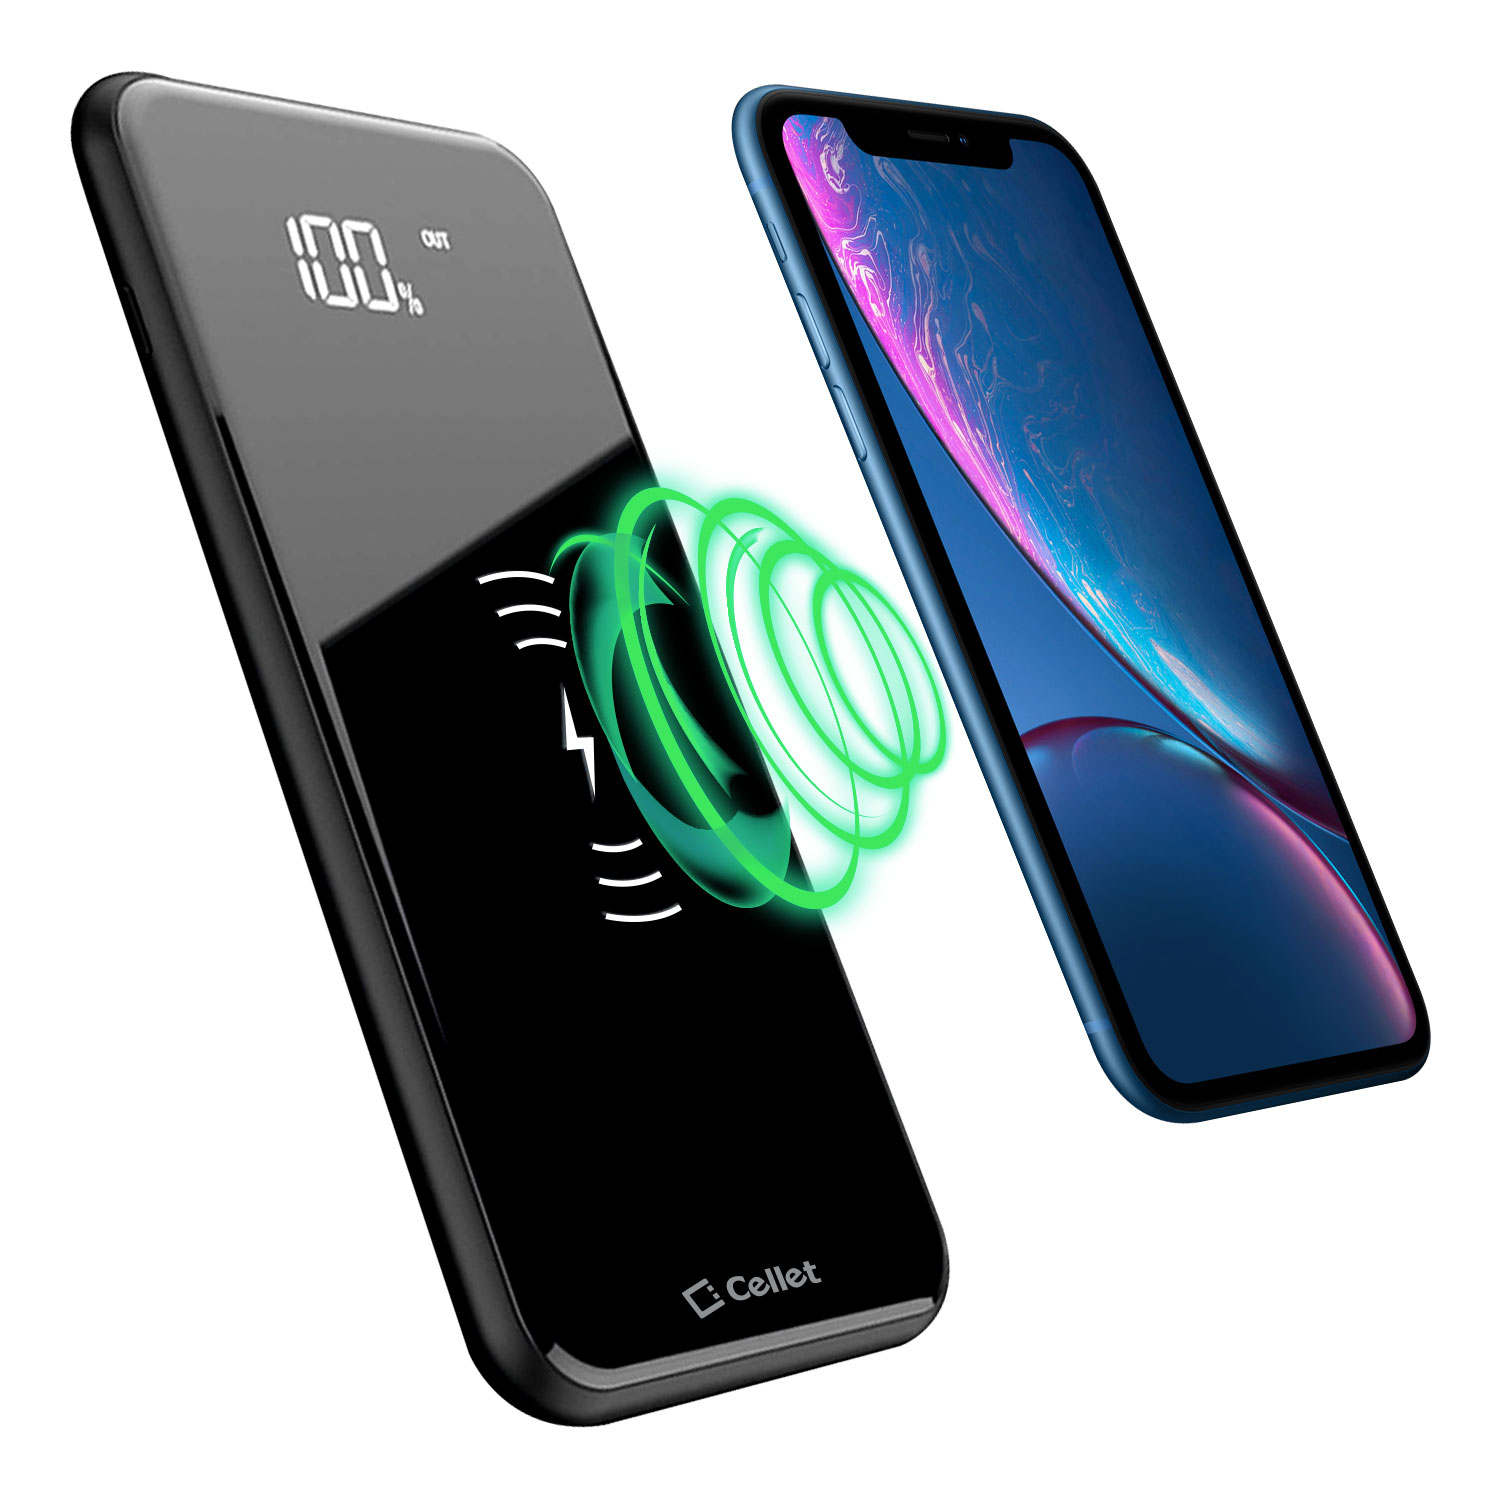 Samsung Galaxy S9 Plus Portable Wireless Charger Power Bank Black 10,000mAh